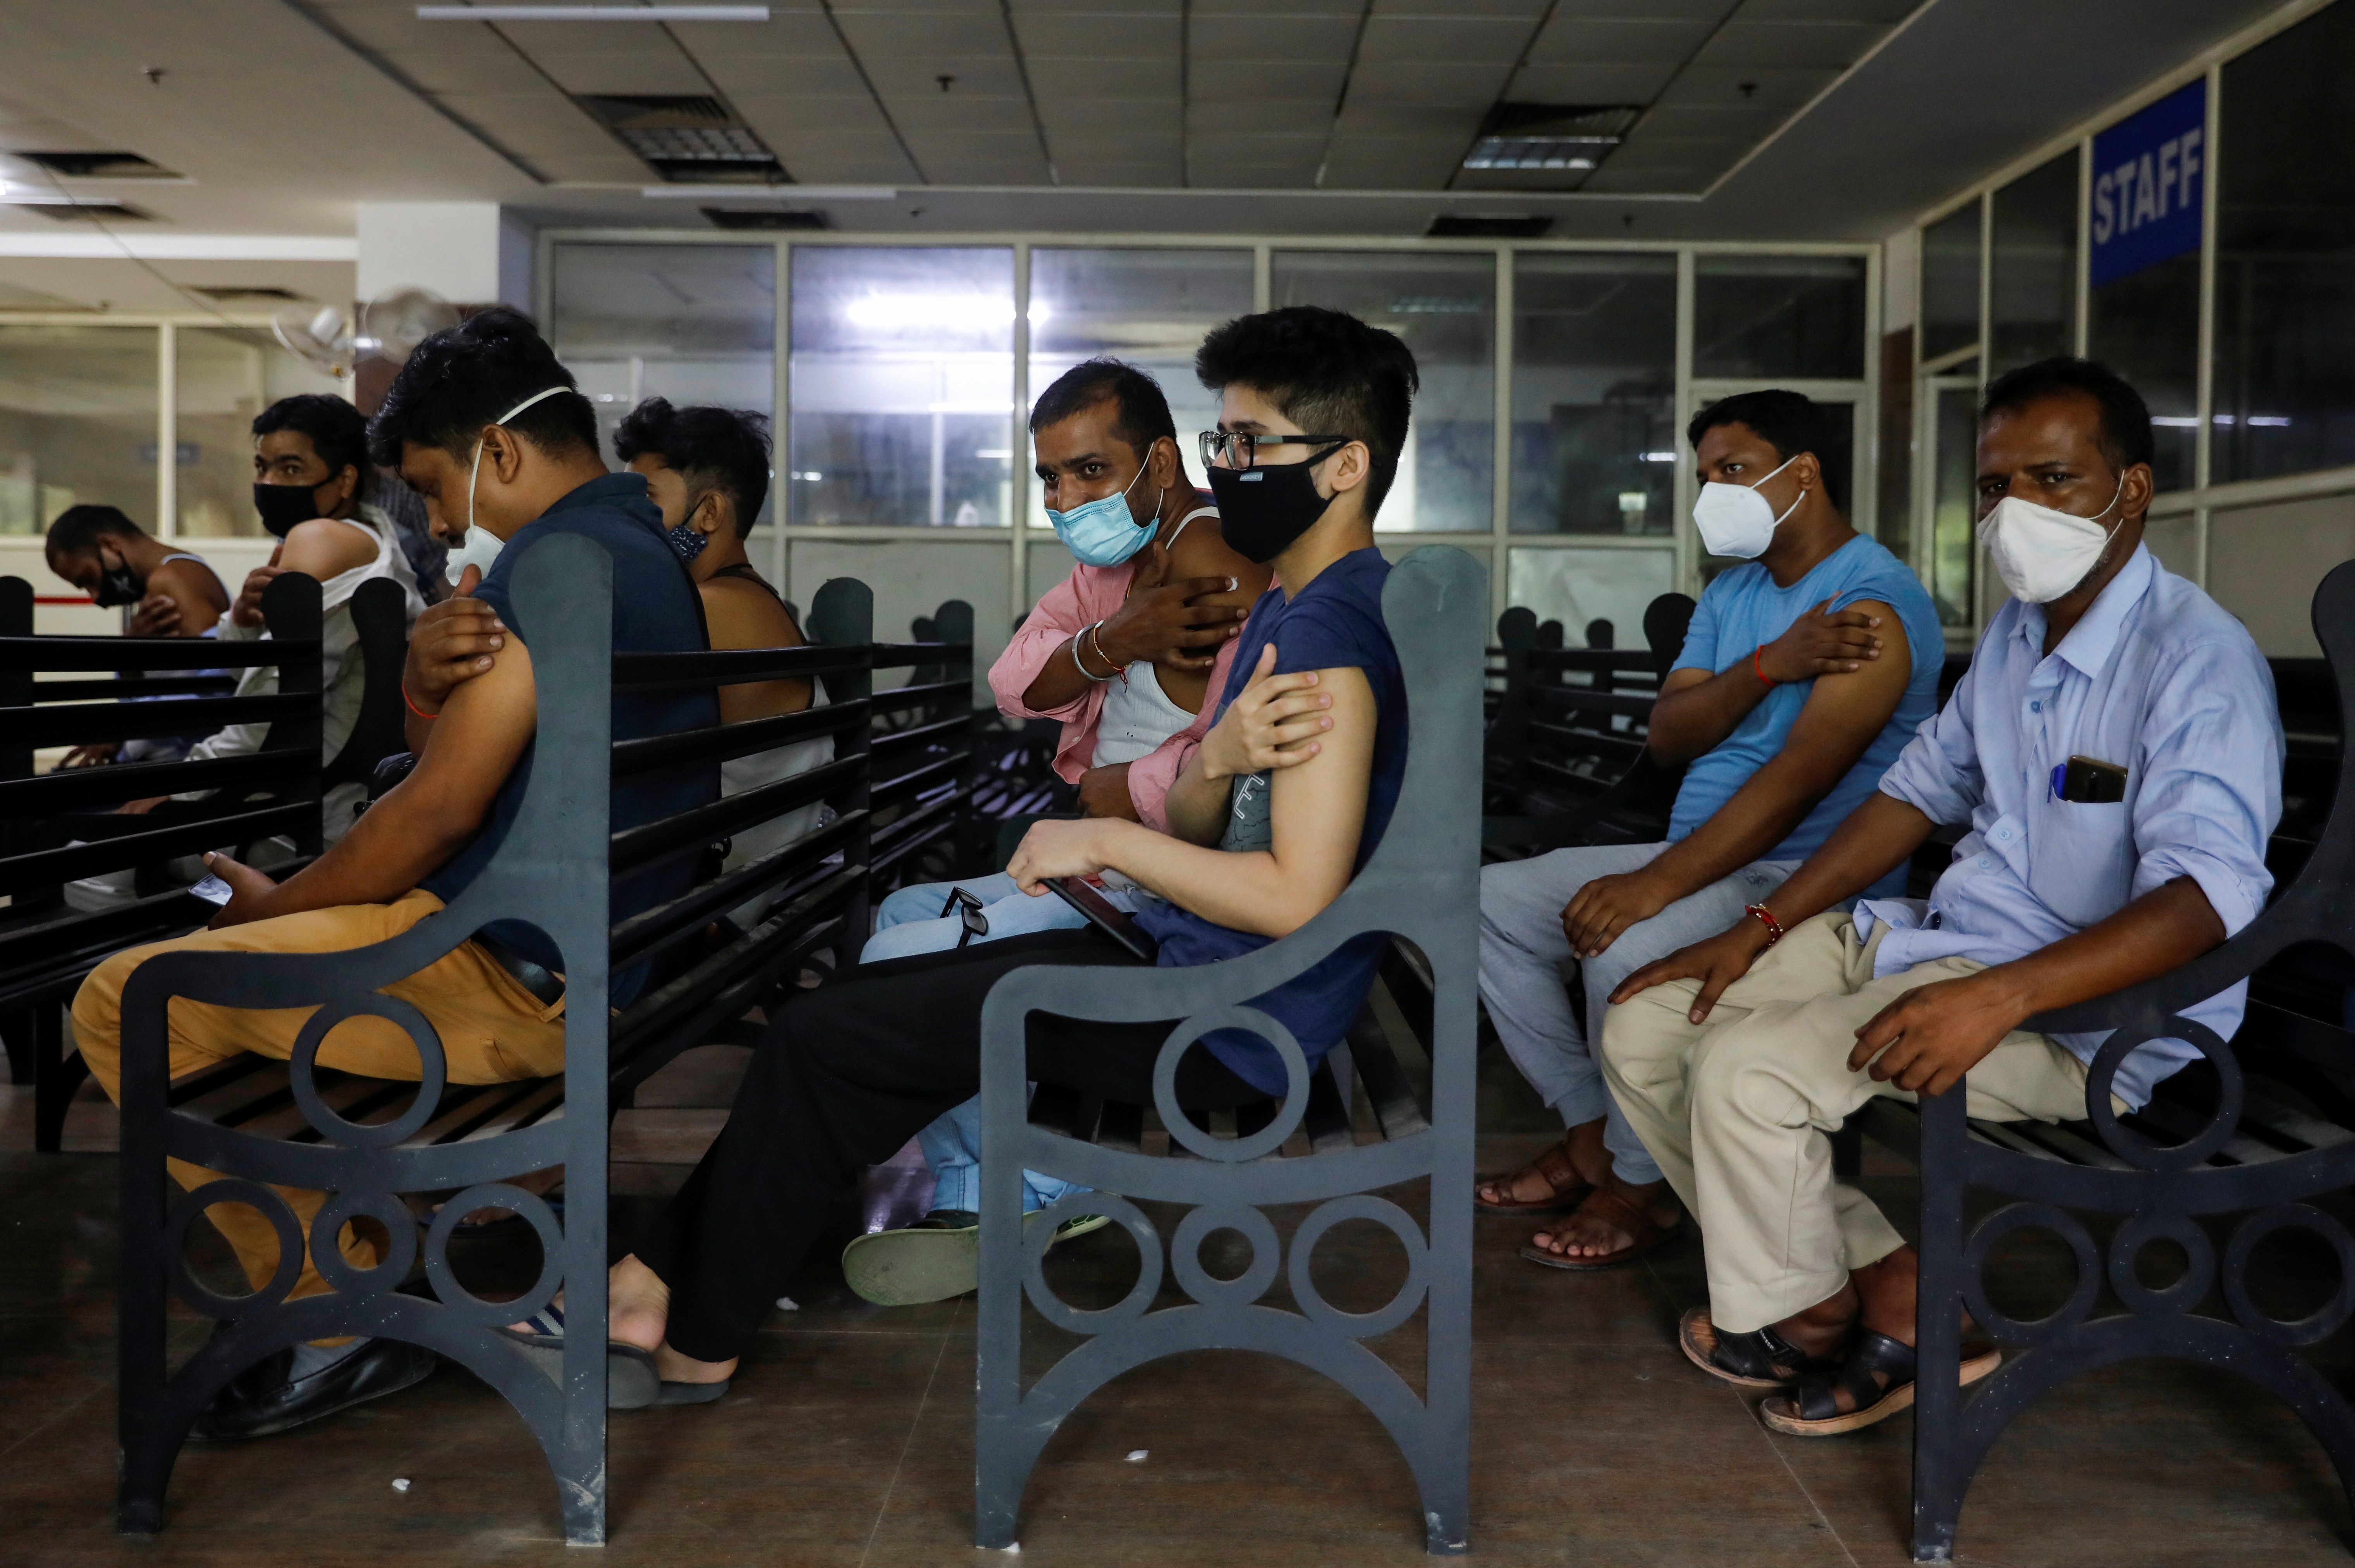 People wait at the observation area after receiving a dose of COVISHIELD, a vaccine against coronavirus disease (COVID-19) manufactured by Serum Institute of India, at a hospital in Noida on the outskirts of New Delhi, India, August 30, 2021. REUTERS/Adnan Abidi